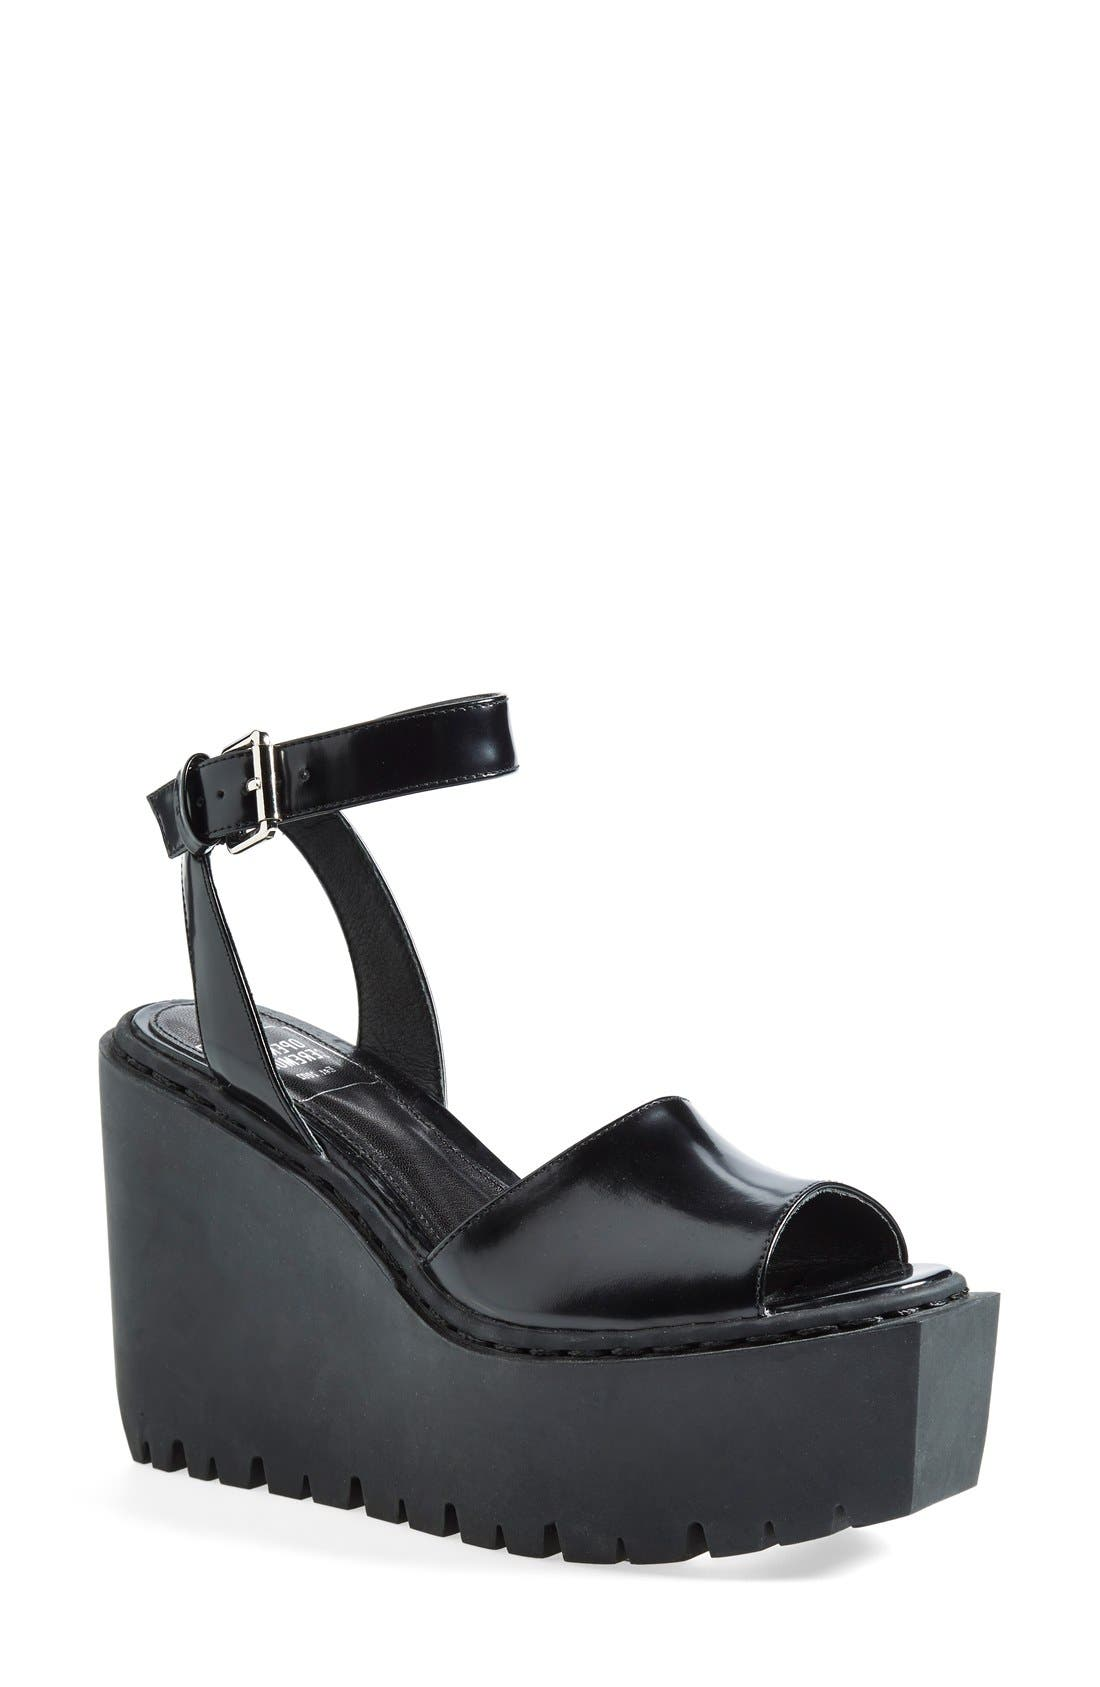 Alternate Image 1 Selected - Opening Ceremony 'Grunge' Wedge Ankle Strap Sandal (Women)